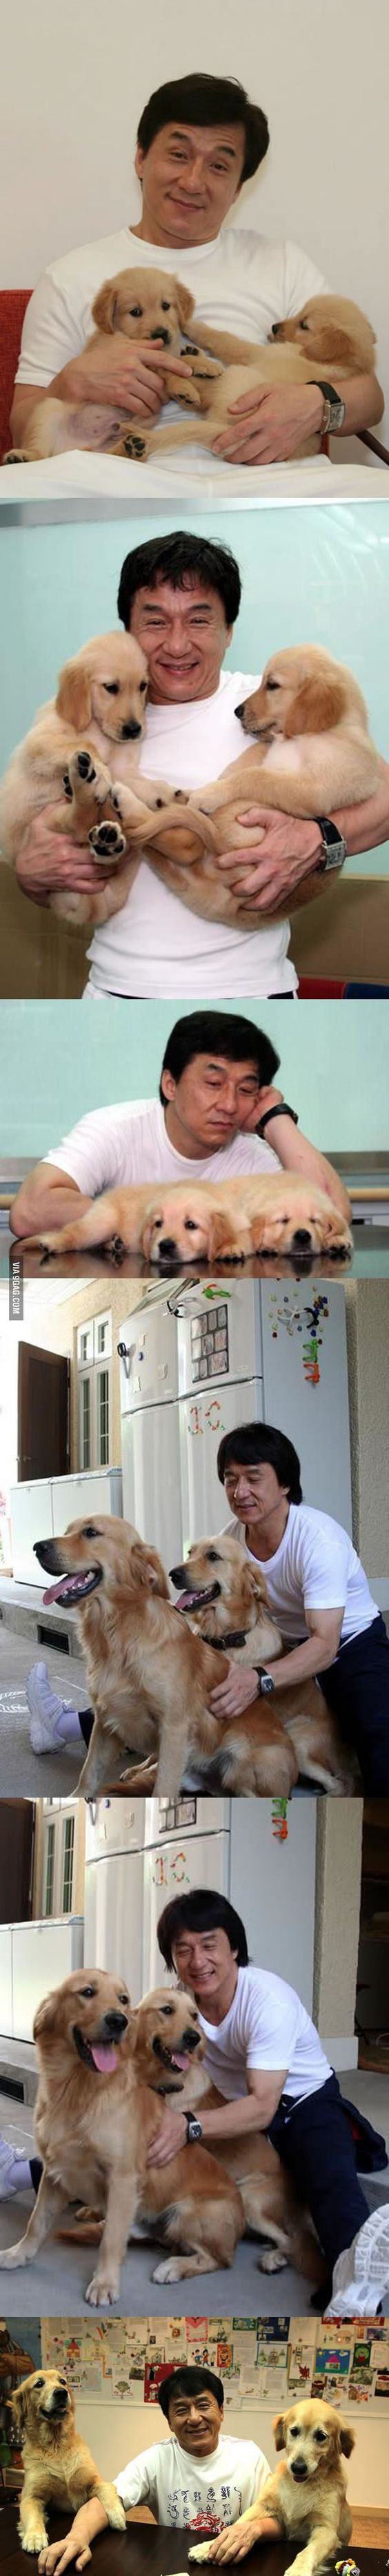 Jackie Chan and his two golden retrievers Jones and JJ.